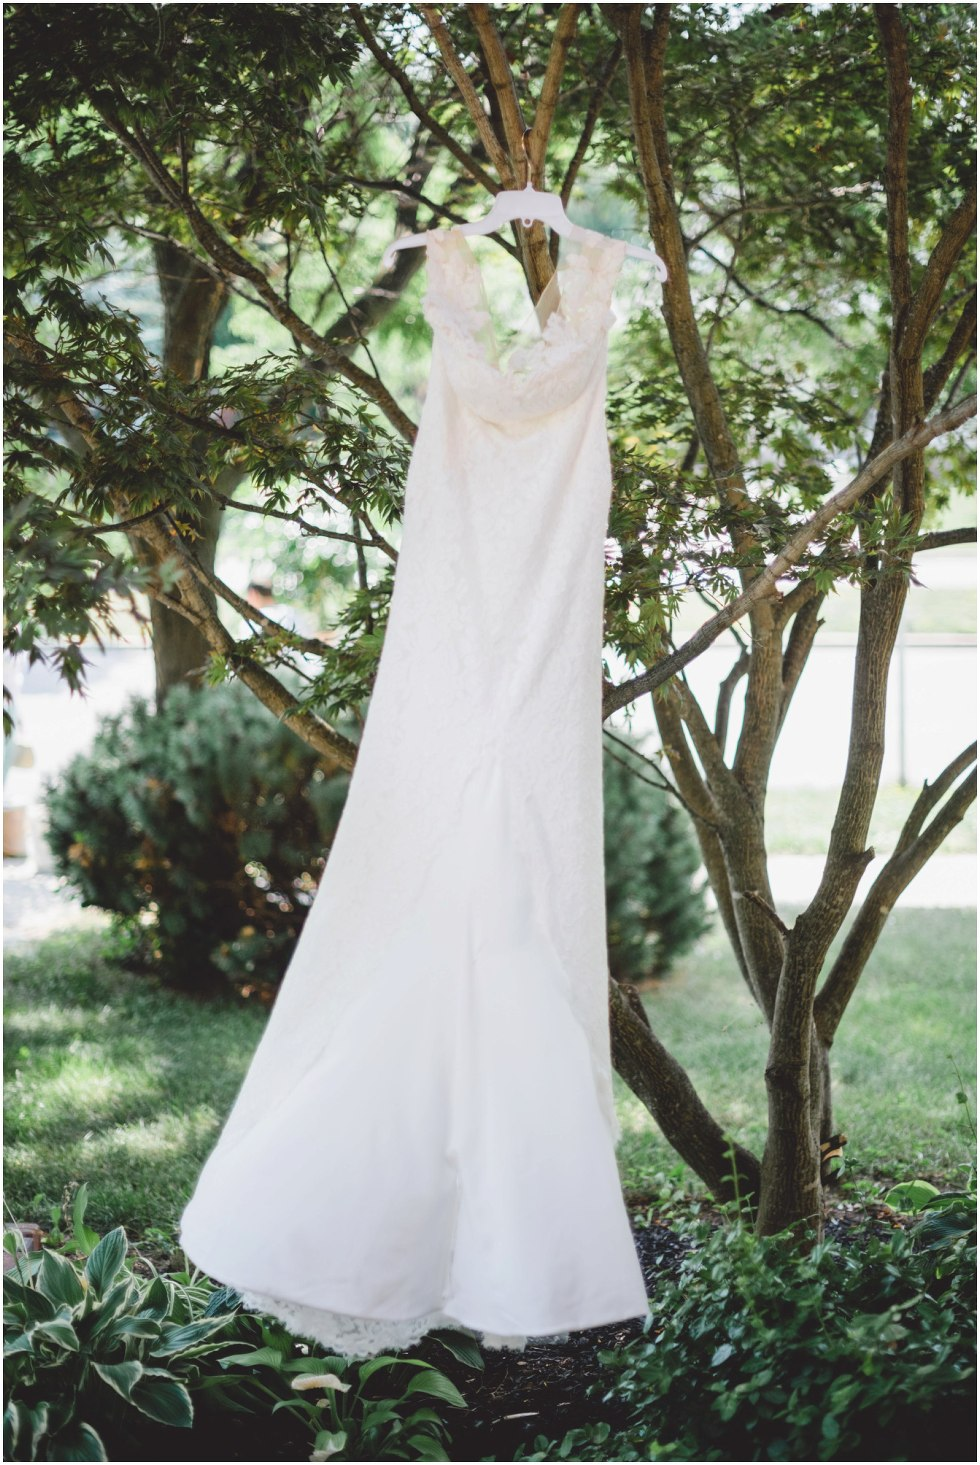 Brides dress swaying in the wind as it hangs from a tree